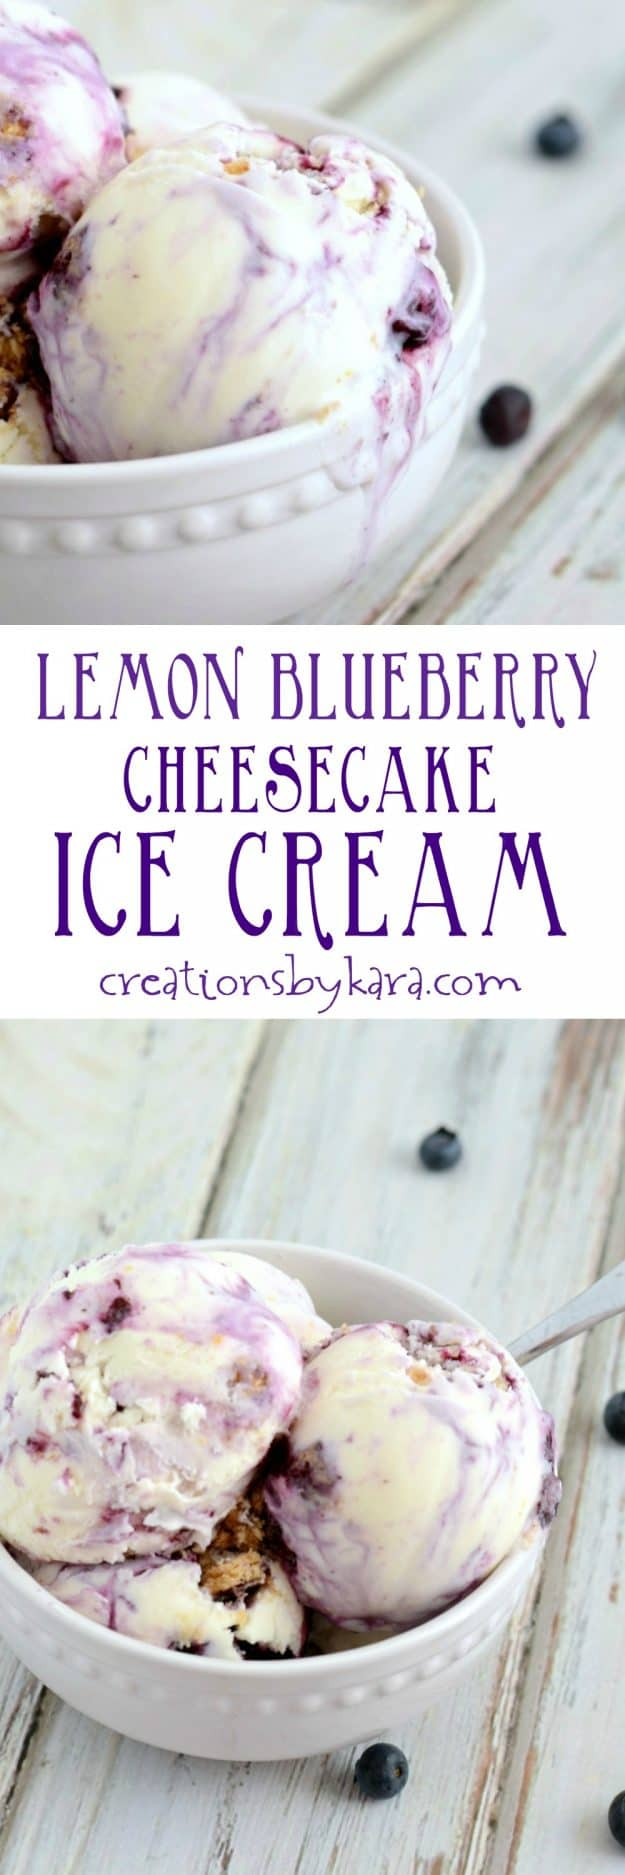 lemon blueberry cheesecake ice cream recipe collage